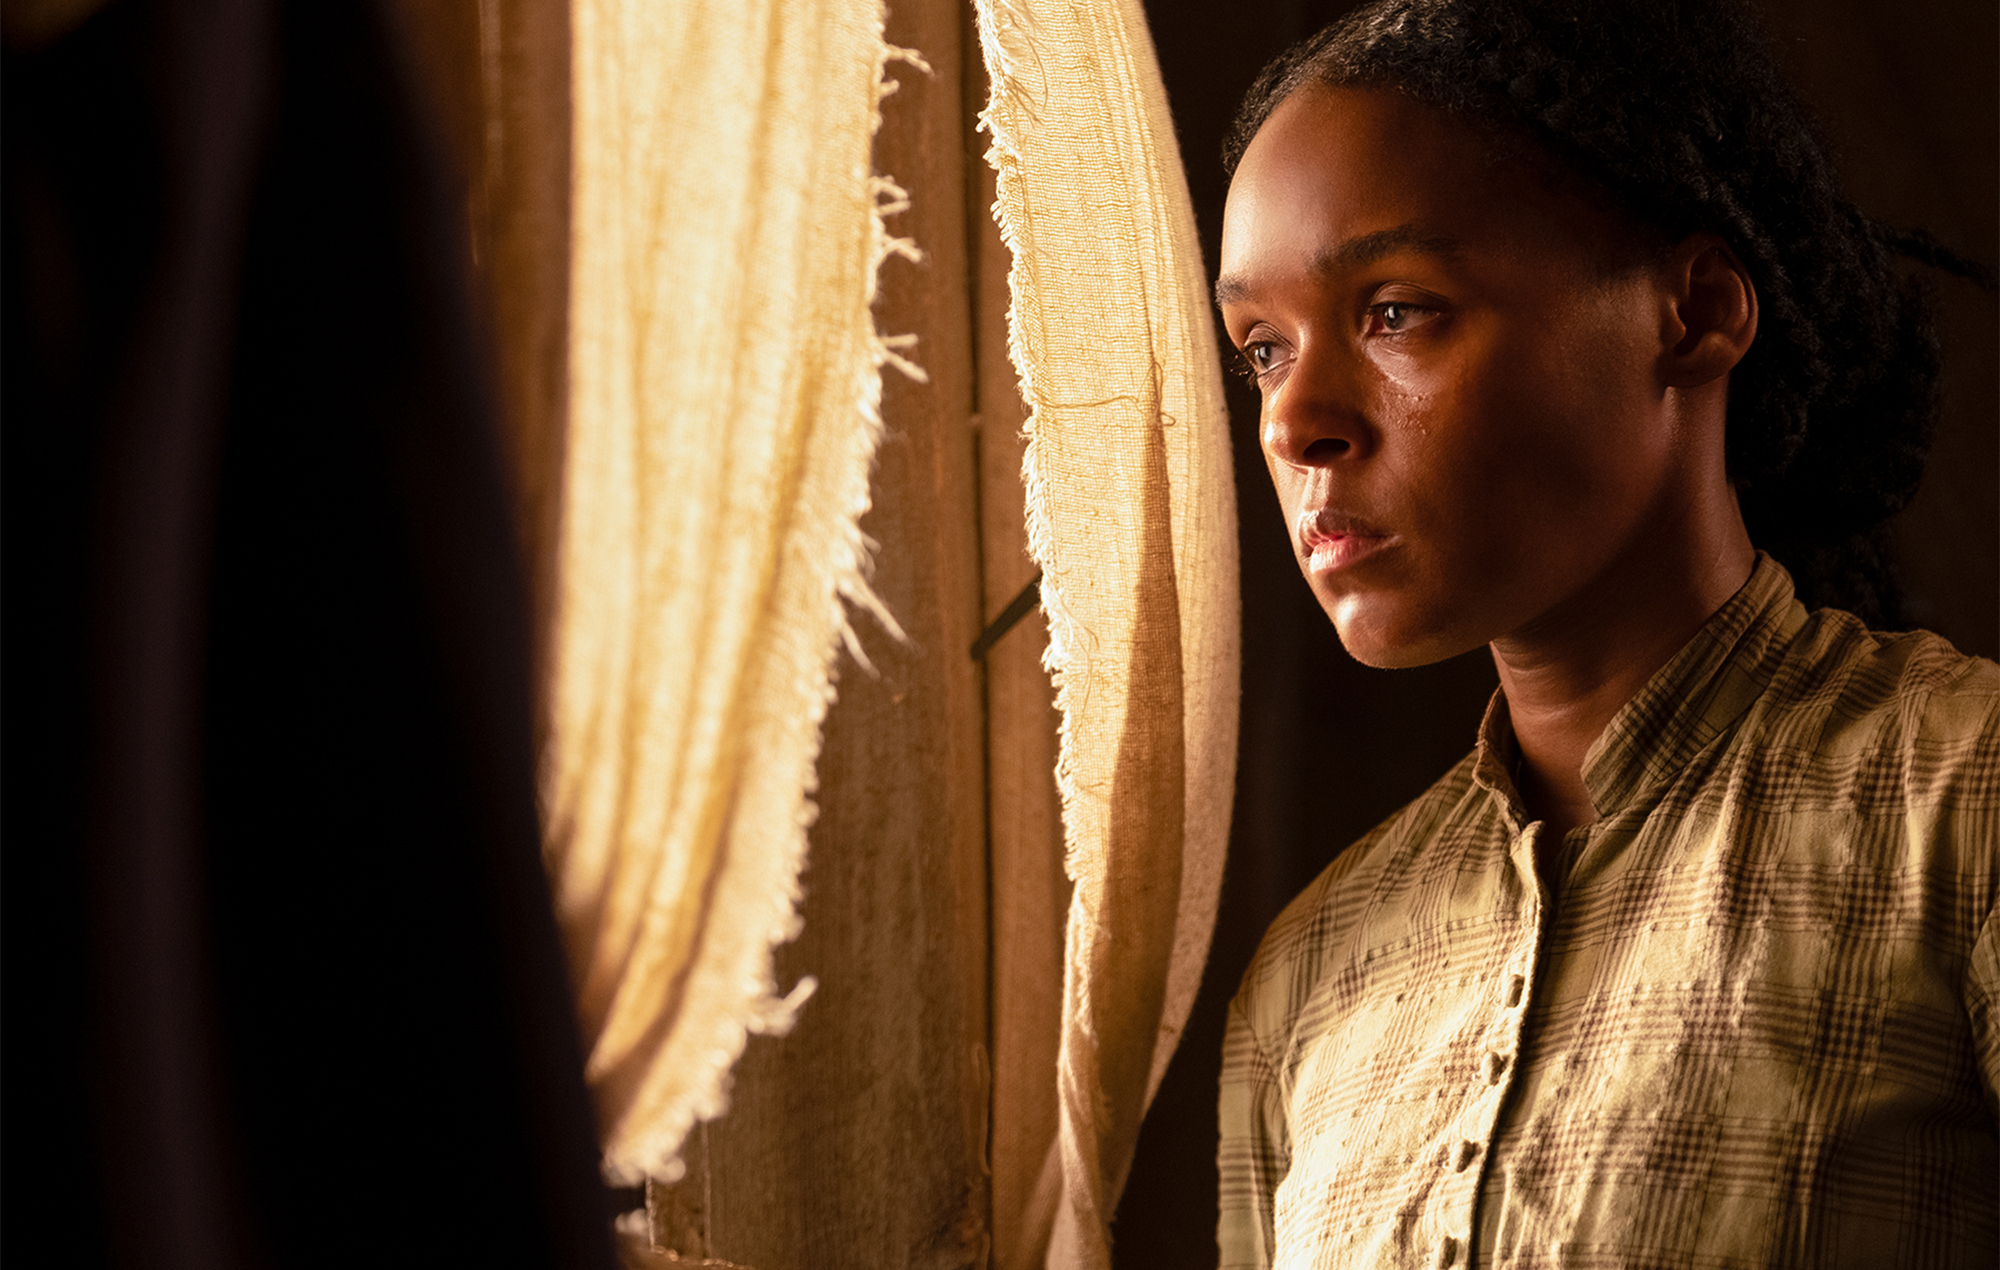 Antebellum's message overshadows its story: Review